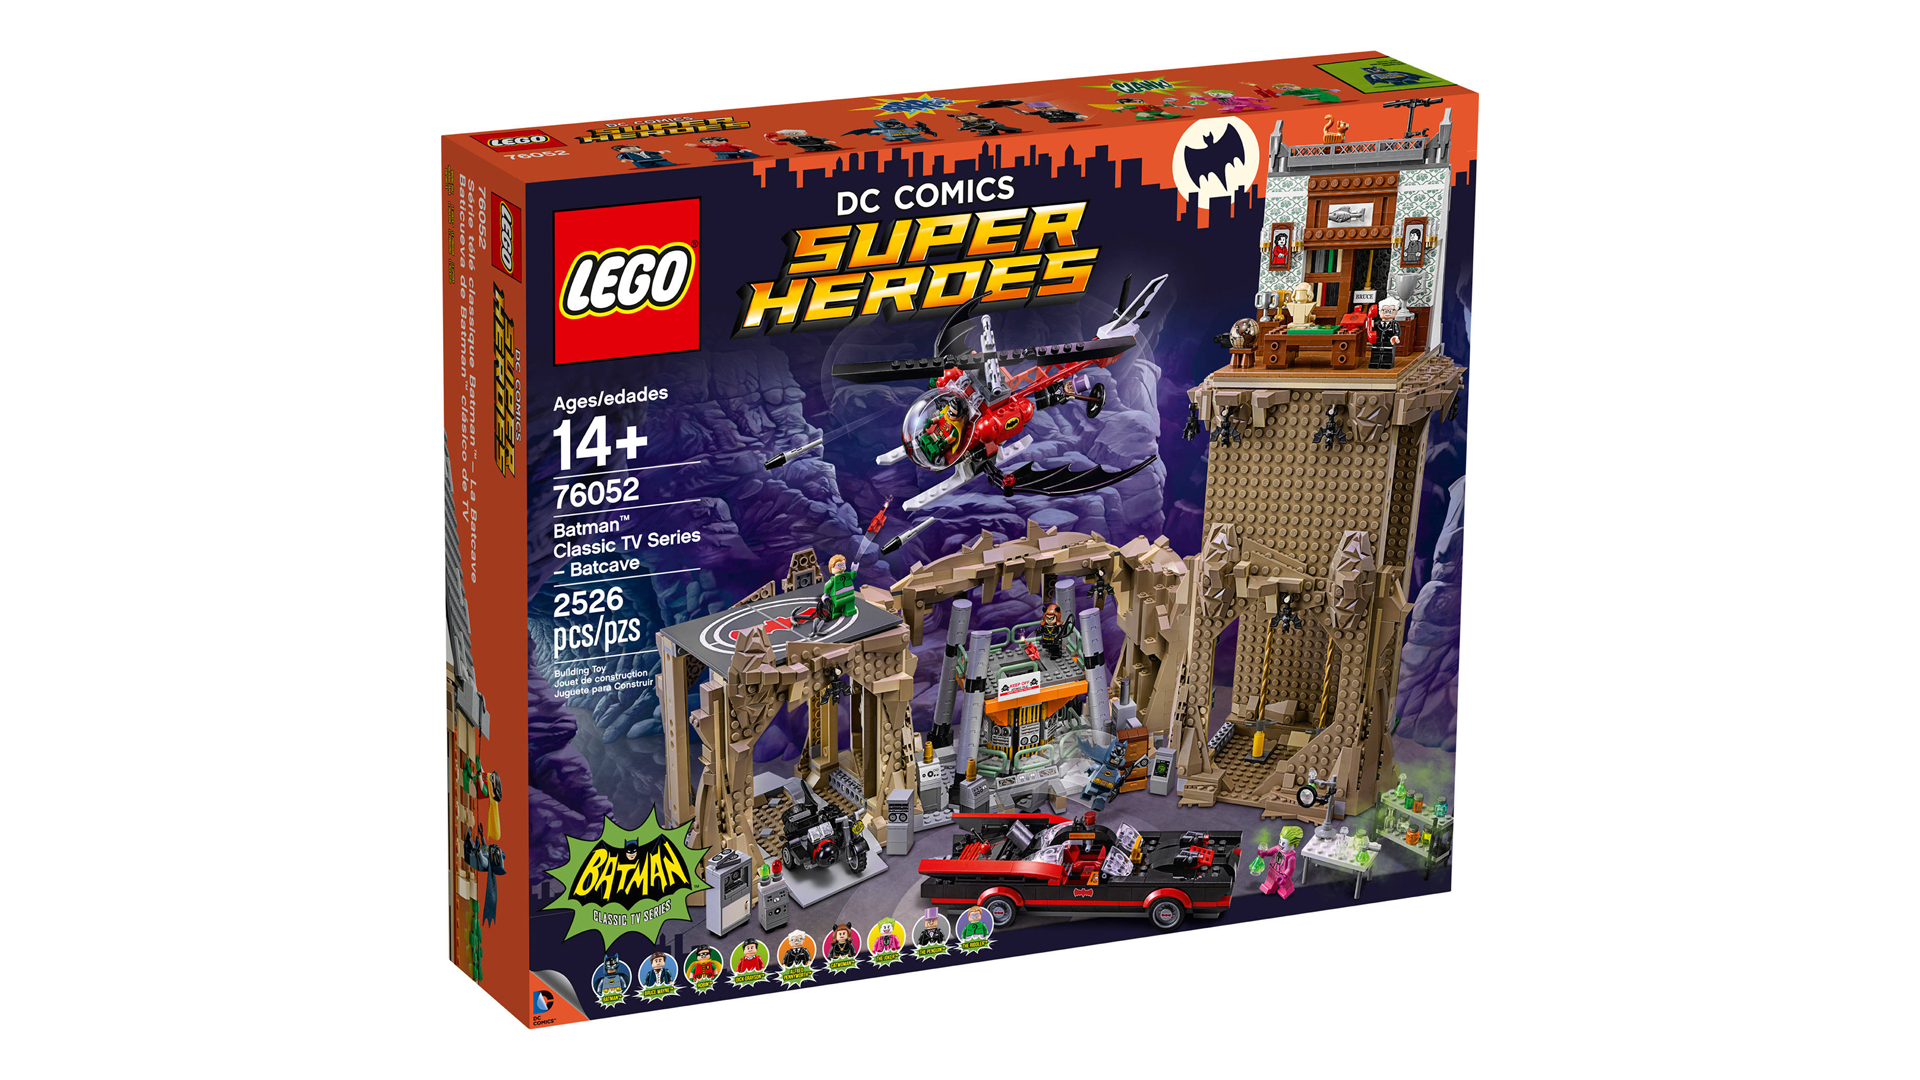 look, i'm mostly including this batman lego set because, well i mean just  look at it  it's a lego set depicting the entire batcave from the 60s adam  west